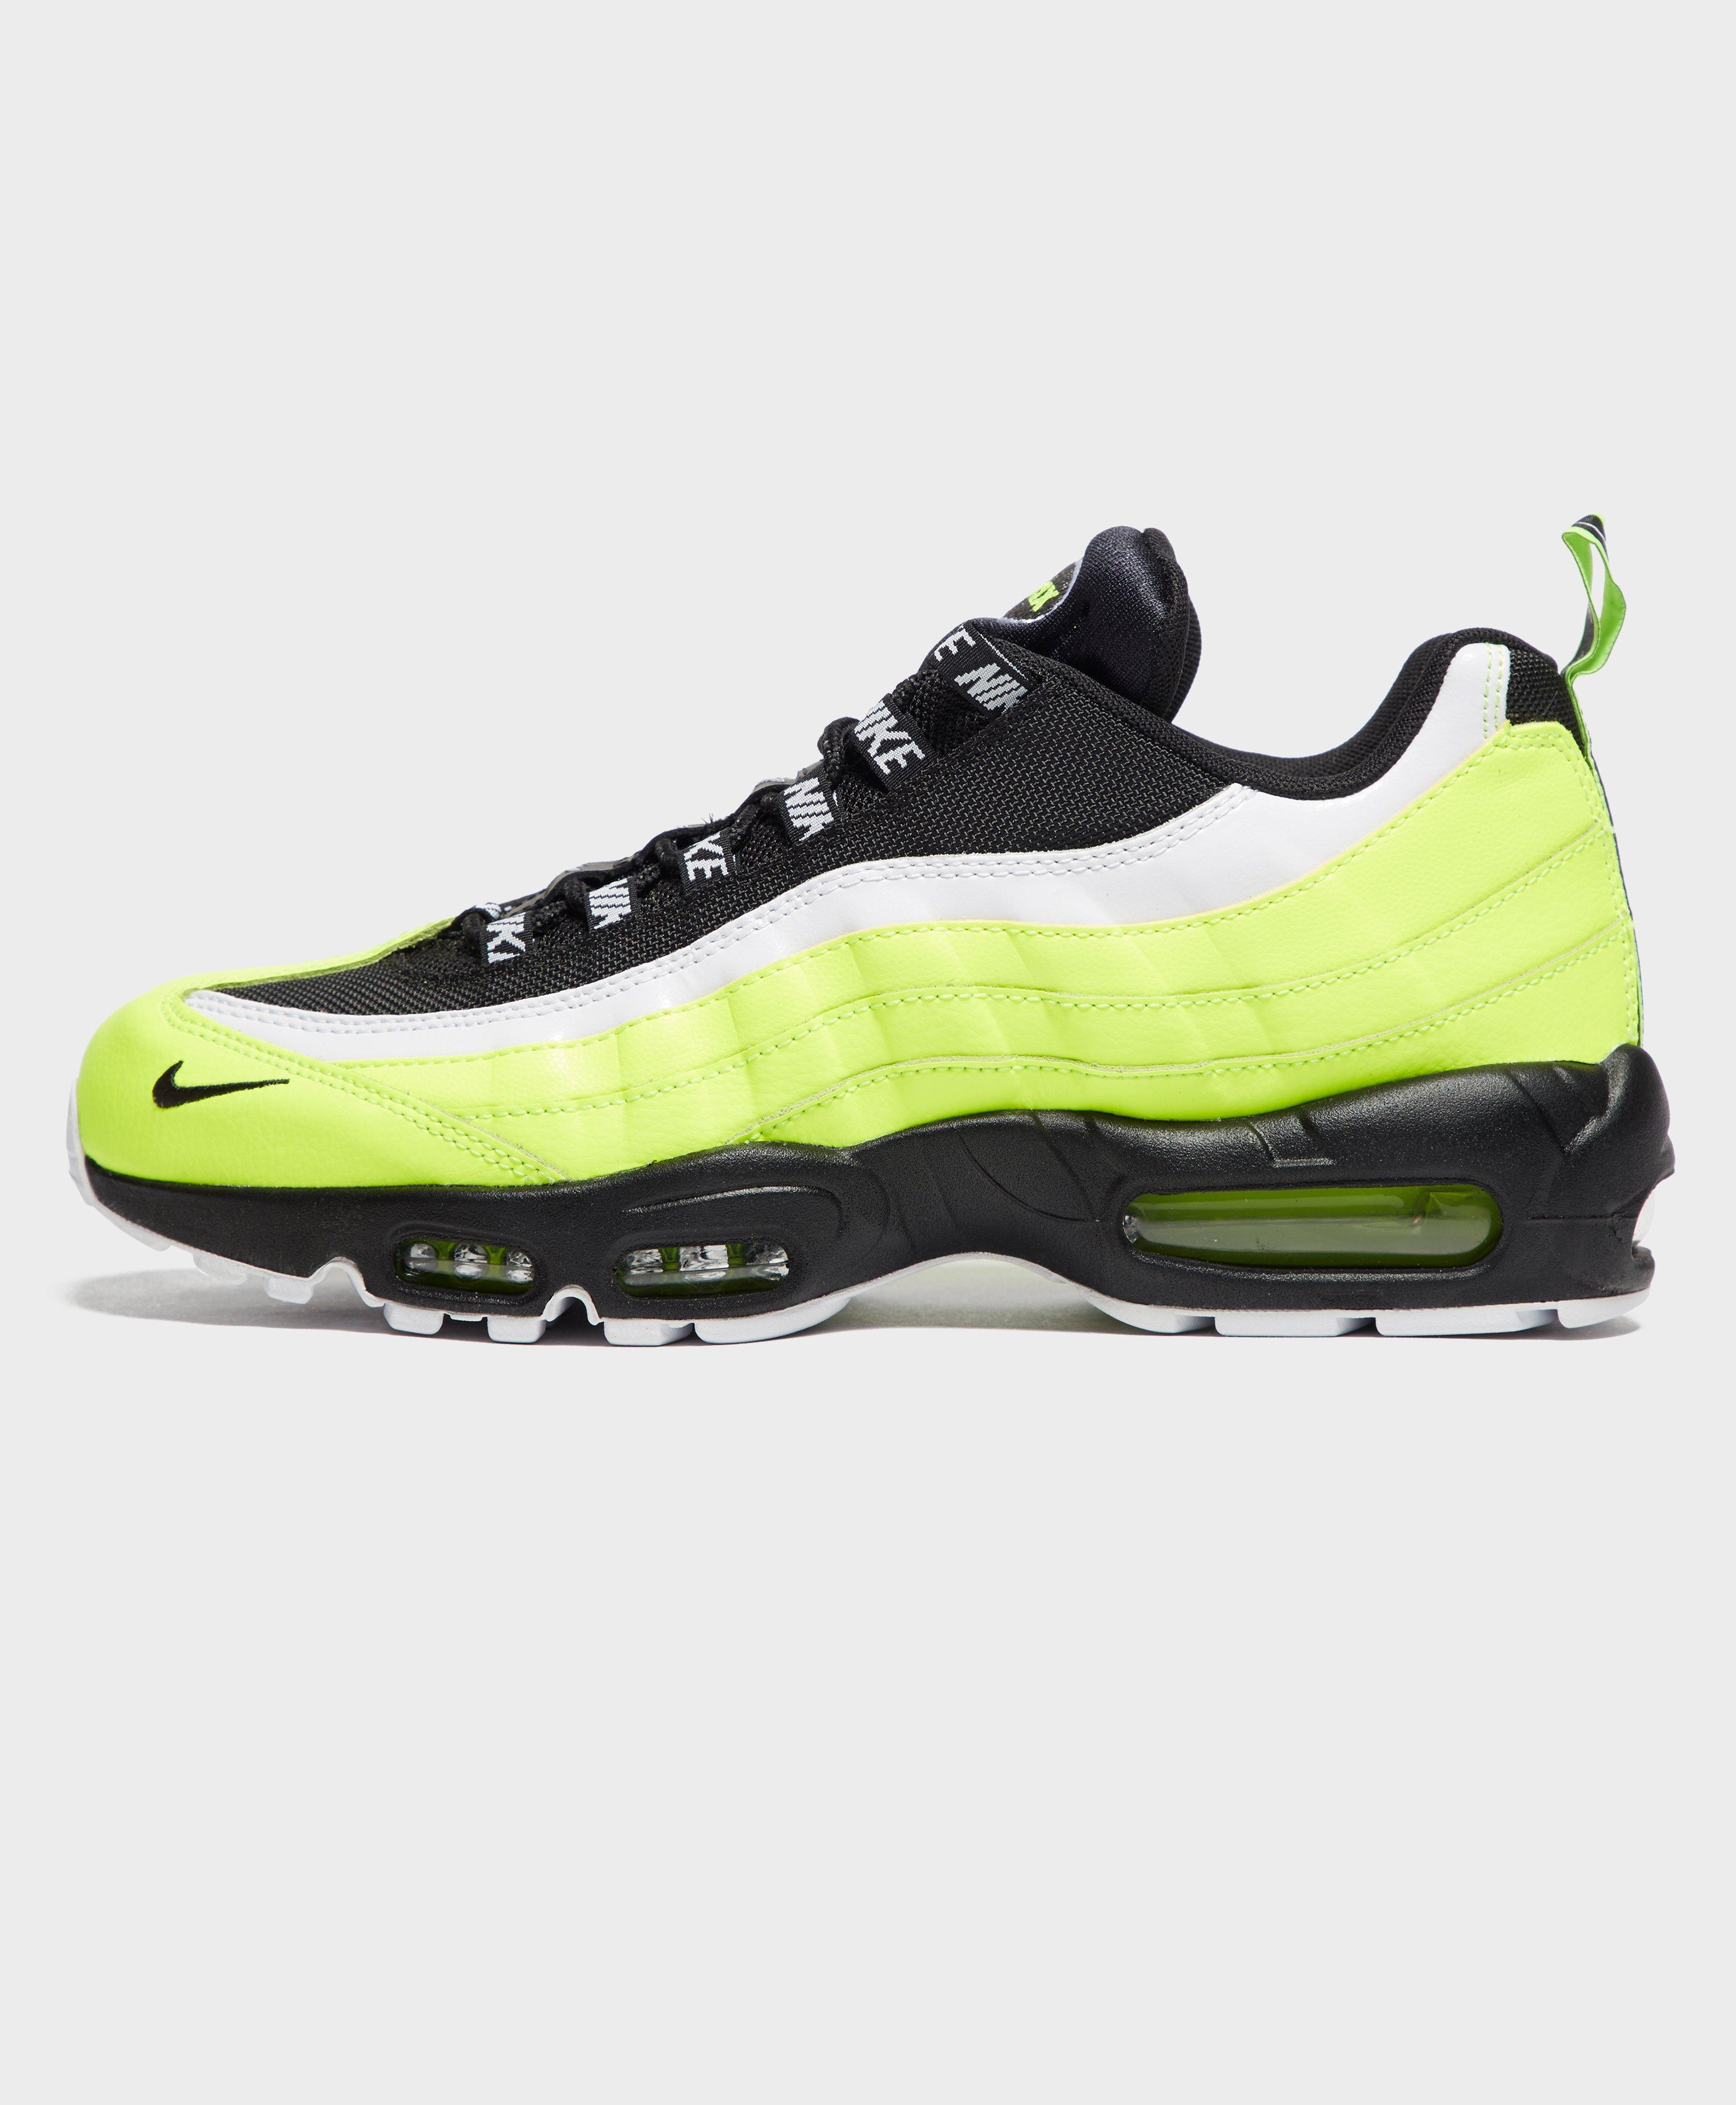 1dab3b24914 Lyst - Nike Air Max 95 Premium for Men